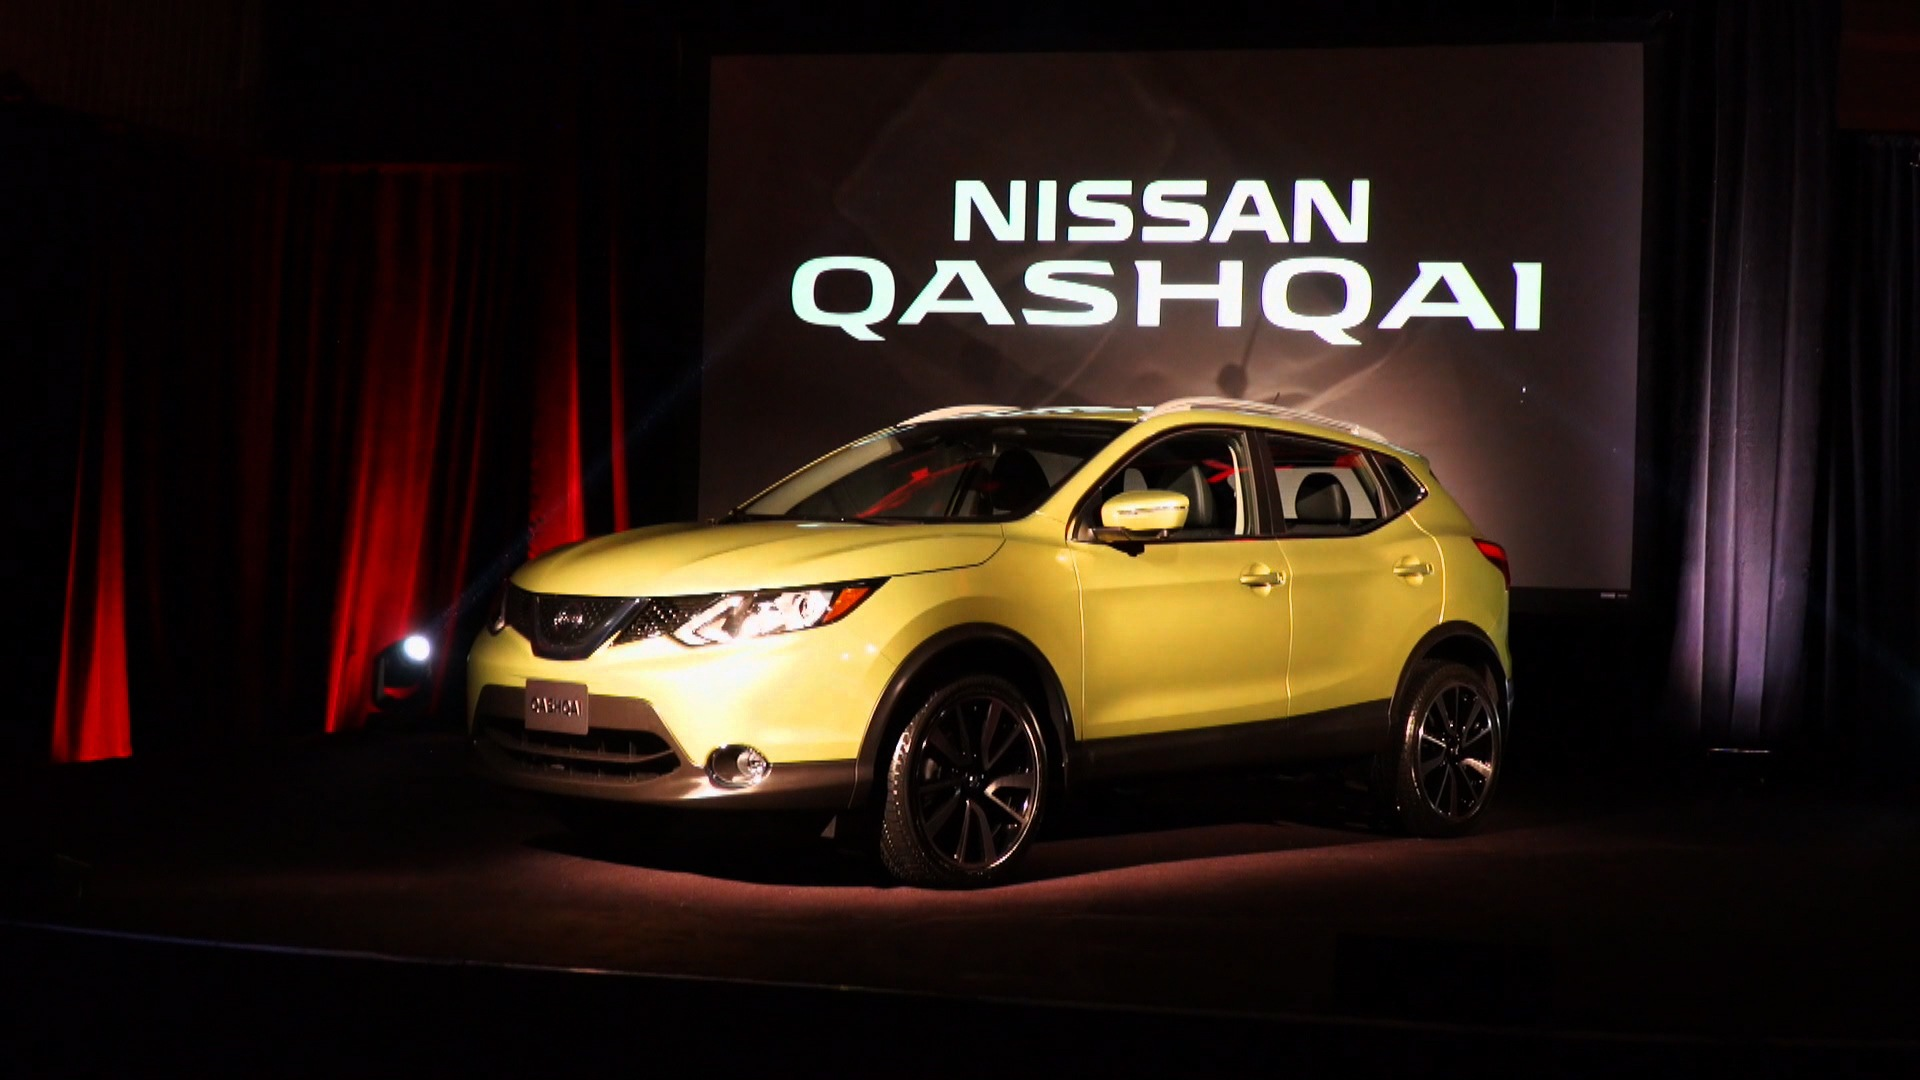 2017 nissan qashqai canadian car reviews driving television. Black Bedroom Furniture Sets. Home Design Ideas